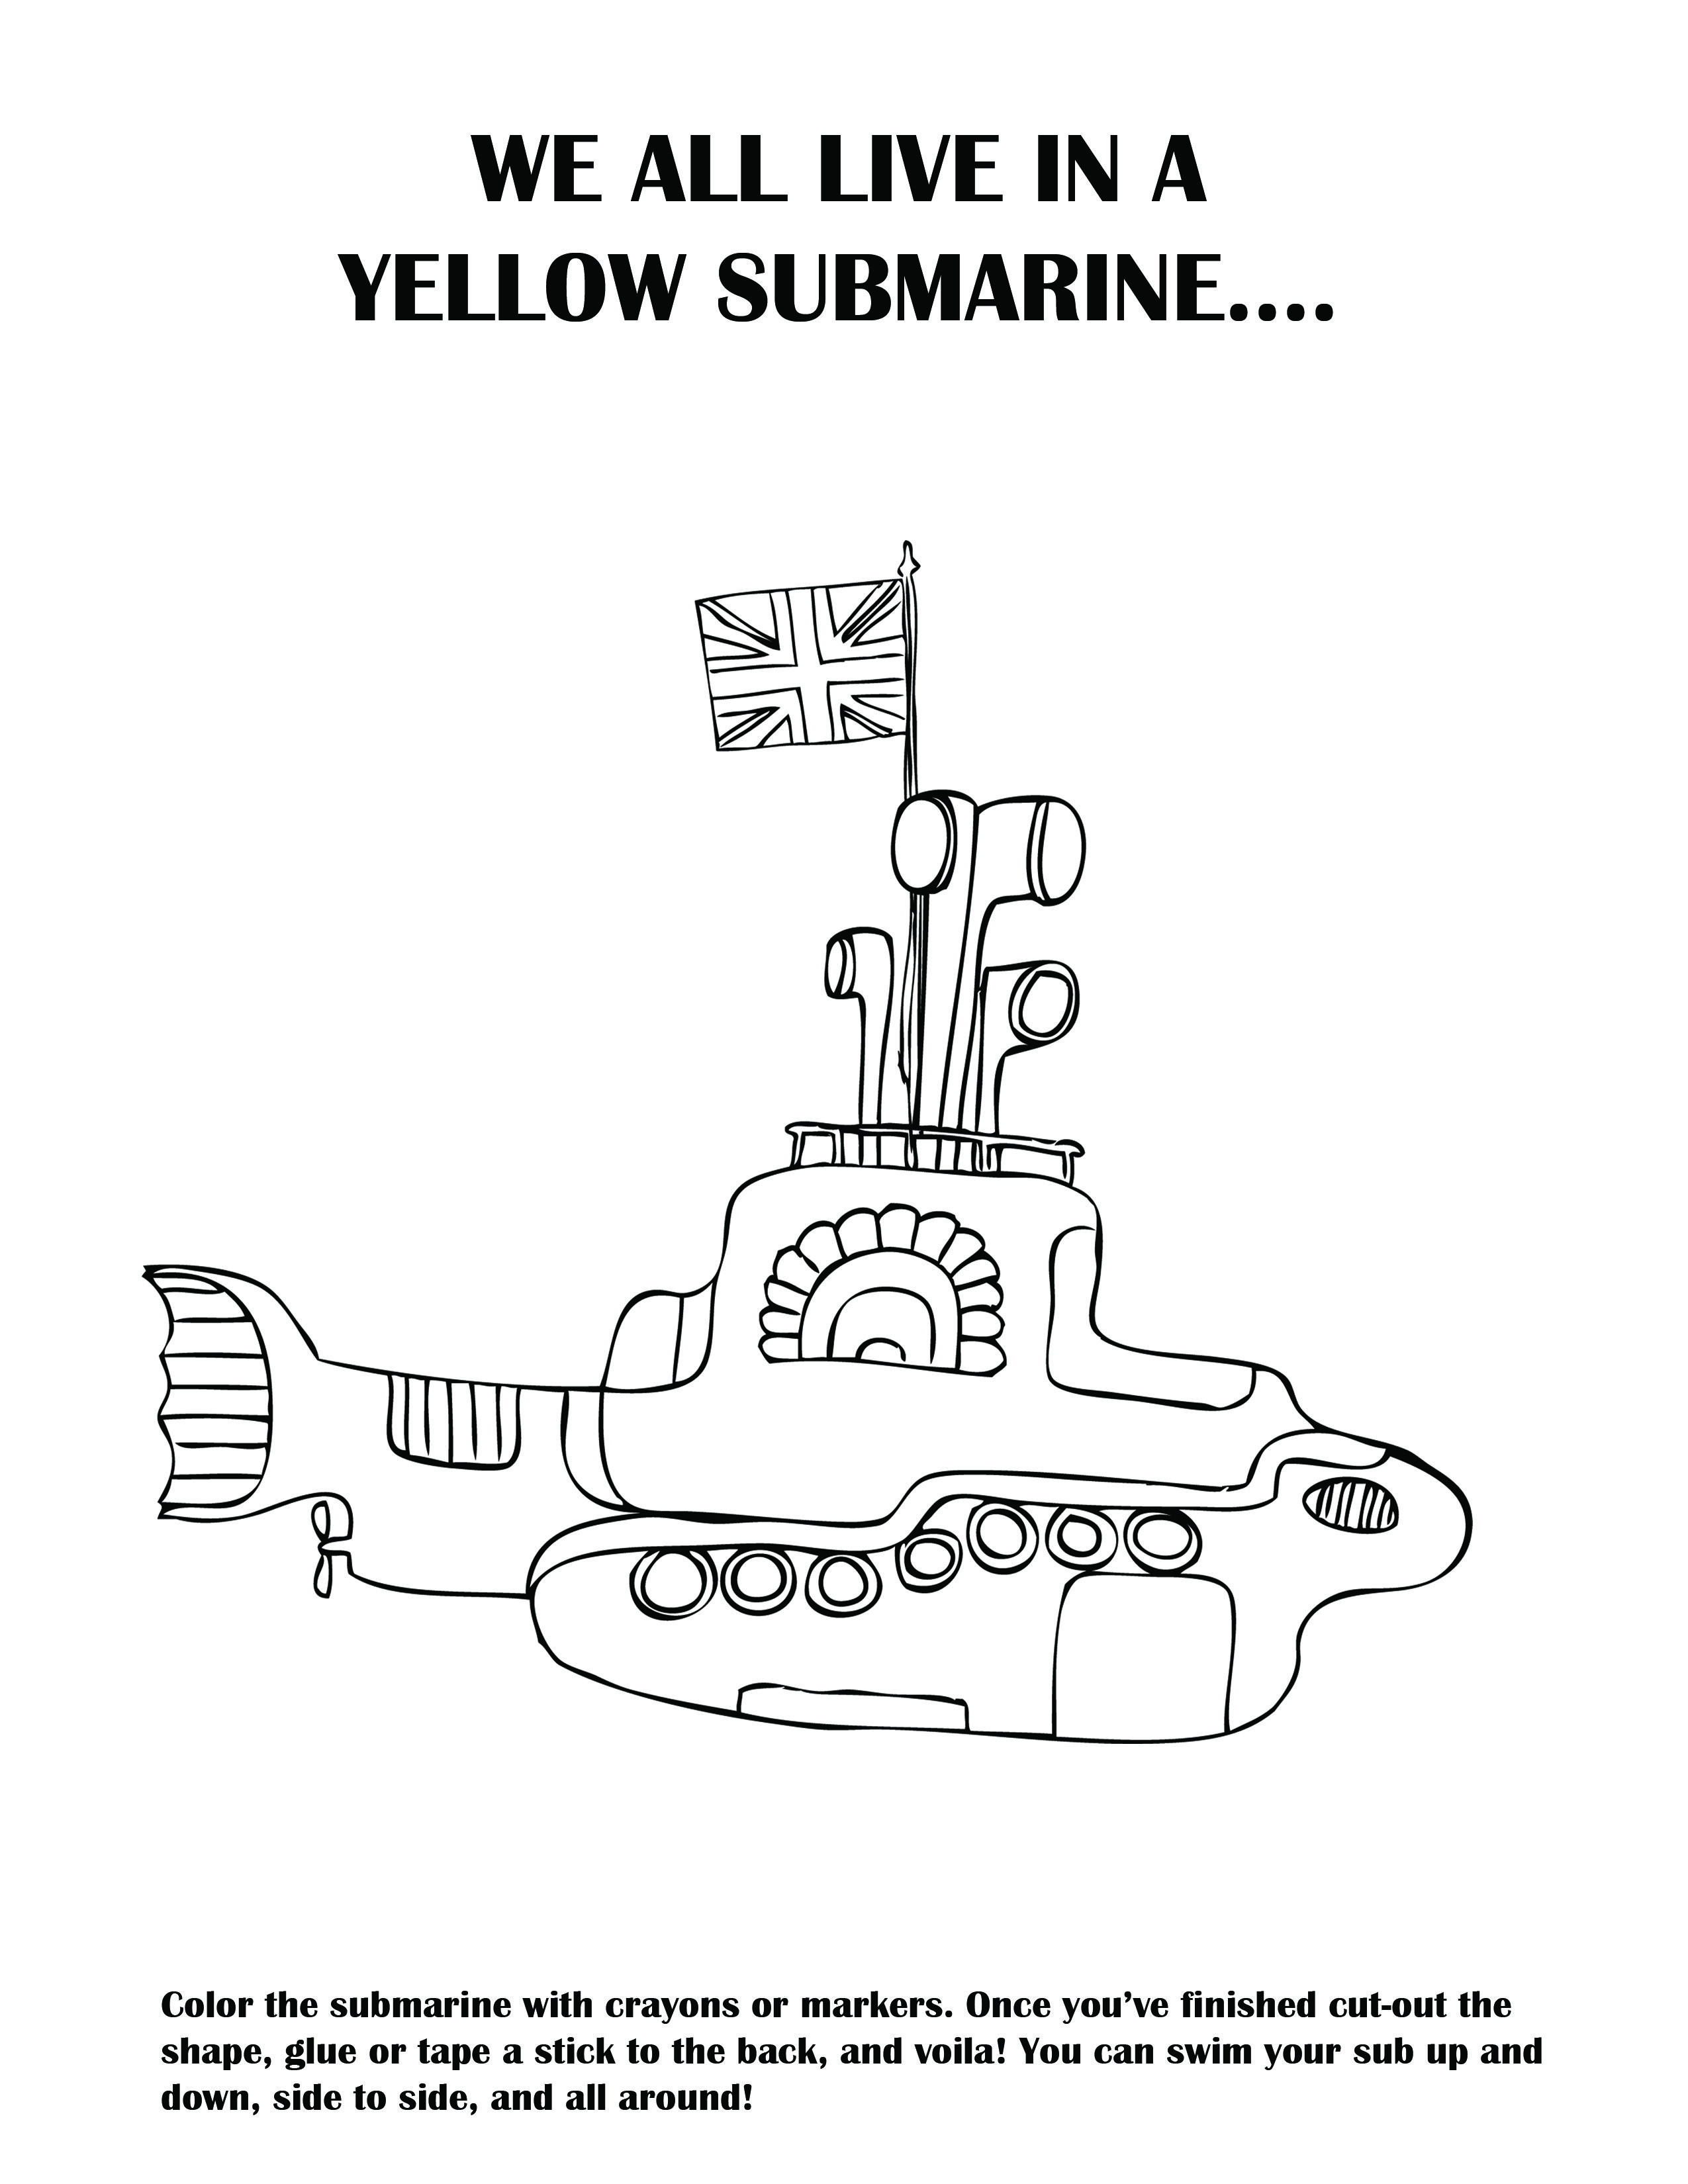 Diy A Yellow Submarine I Made This Activity Sheet For My Nephew S